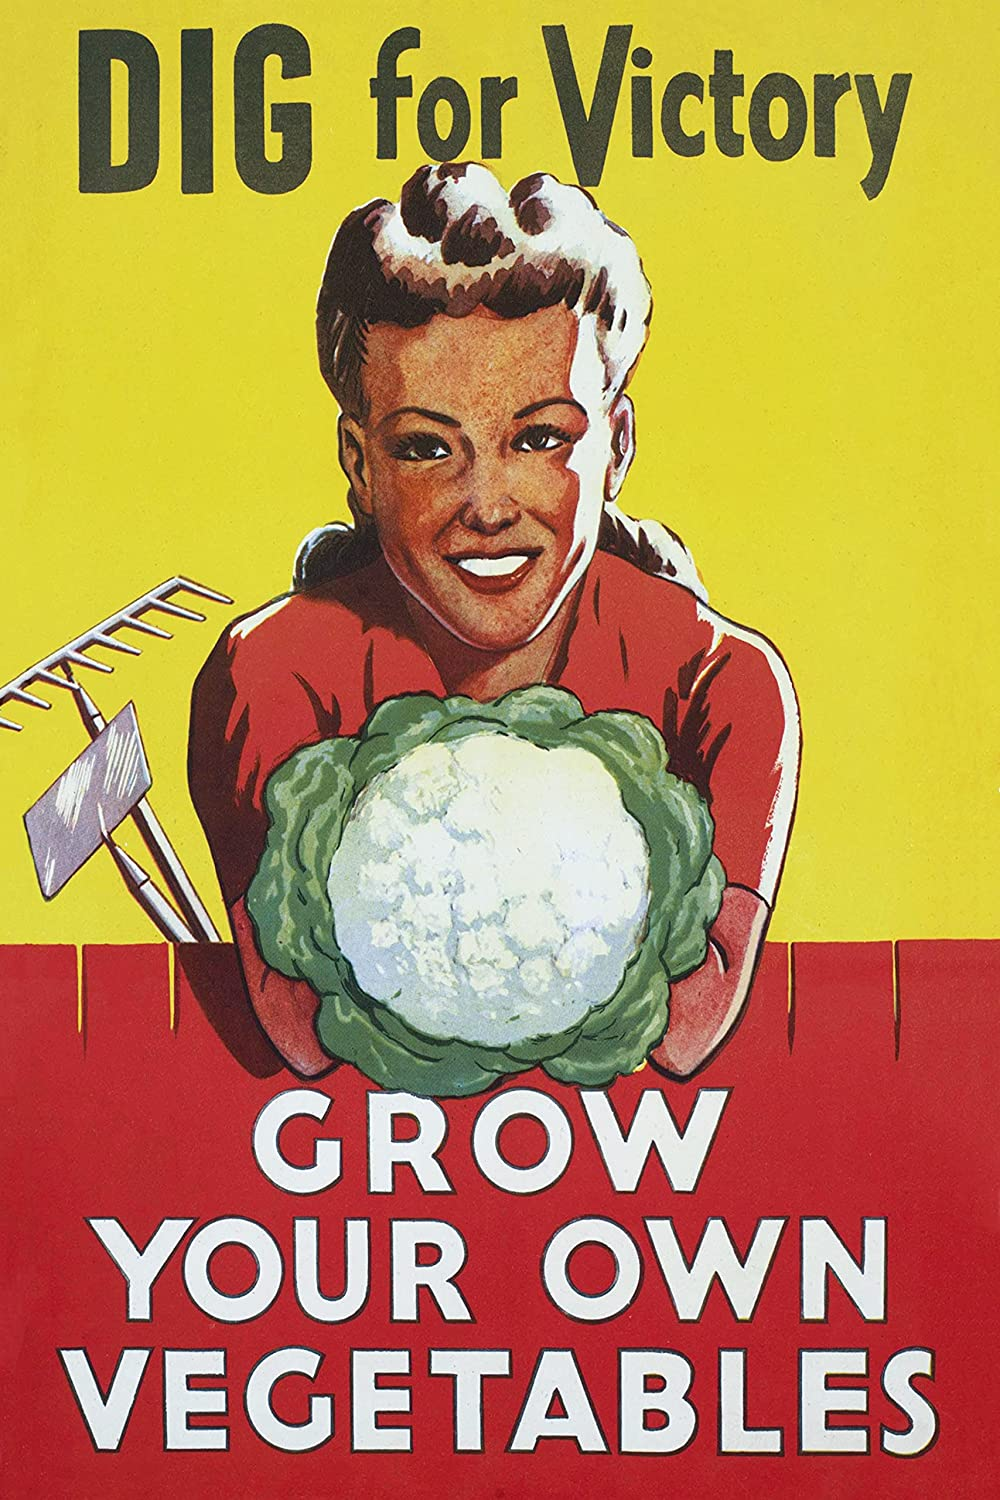 WW2 Propaganda Poster Overseas Fresno Mall parallel import regular item - Dig for Grow Vegetabl Victory Own Your